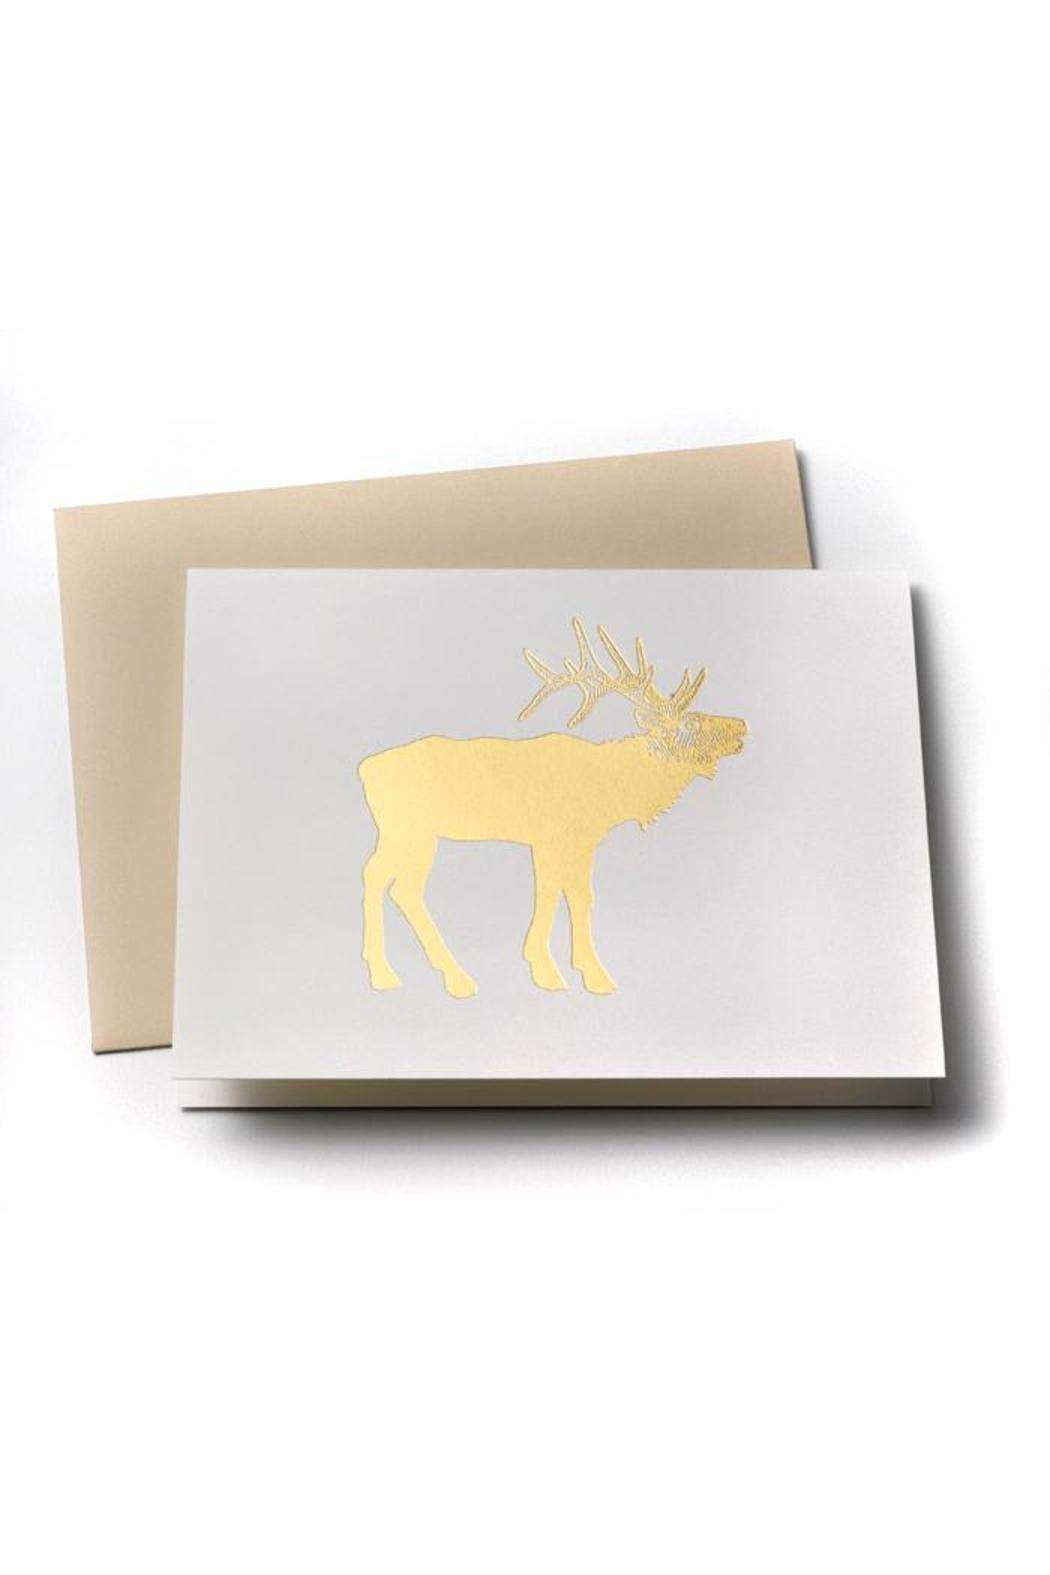 Sycamore street press elk greeting card elk thank you greeting card printed on recycled paper in the utah mountains 4 x 6 blank inside elk greeting card by sycamore street press kristyandbryce Image collections